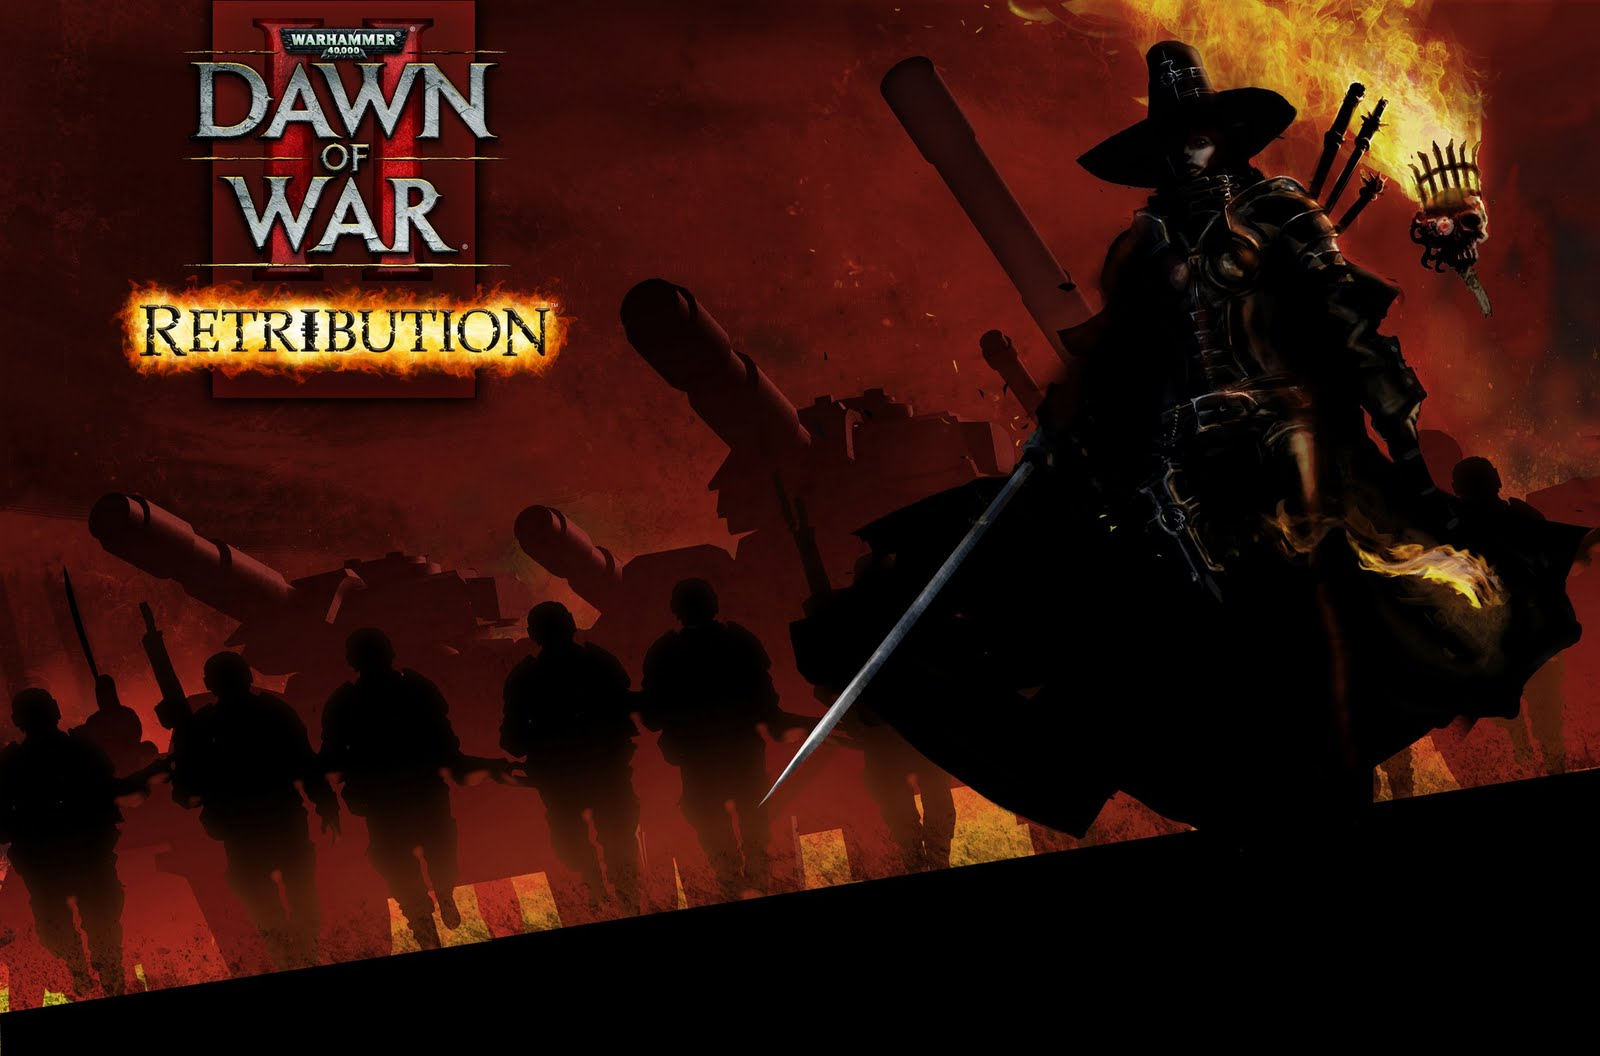 Dawn Of War Hd Wallpapers Download Hd Video Game Wallpapers